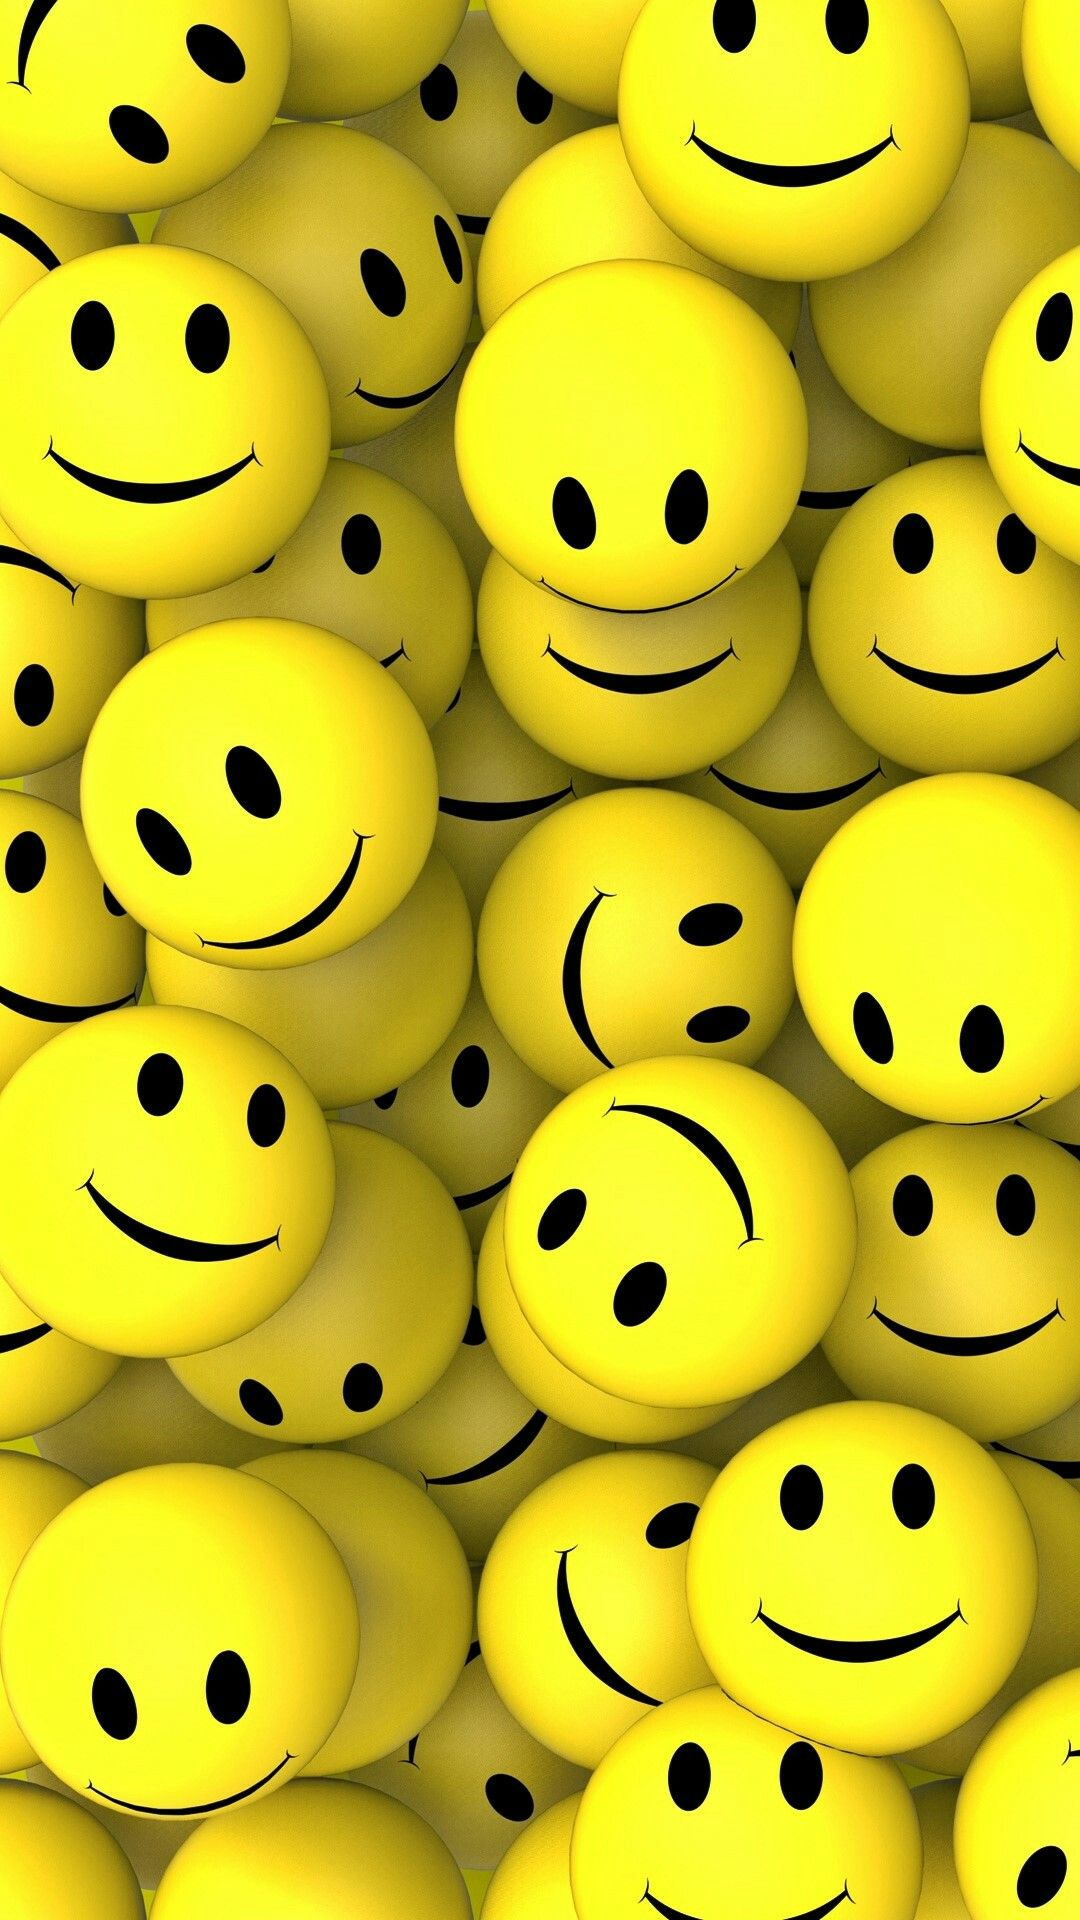 3D SMILEY 3d wallpaper for mobile, Happy wallpaper